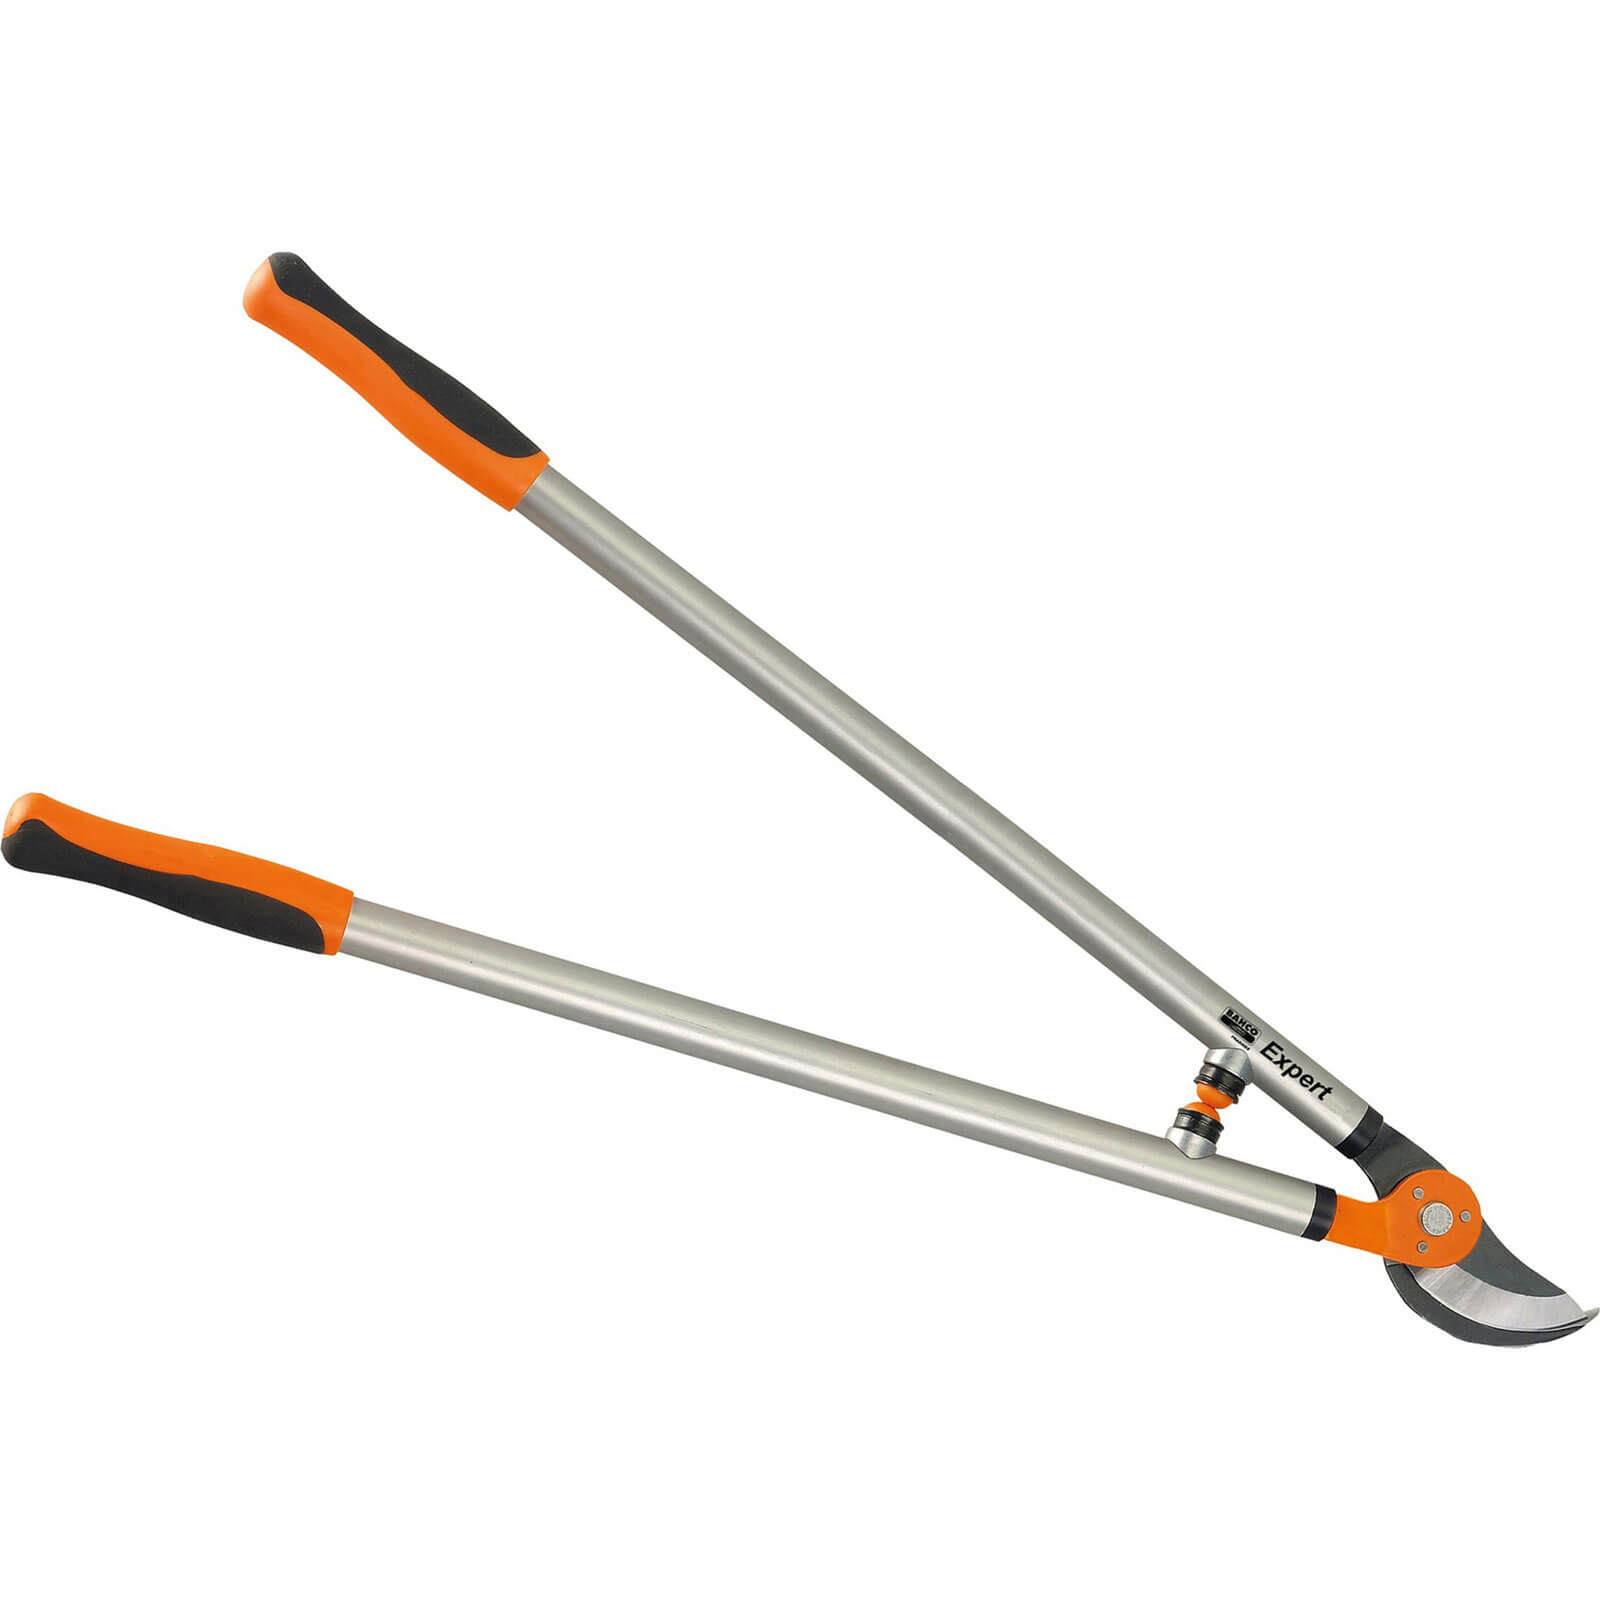 Bahco Bypass Lopper 750mm Long 40mm Capacity